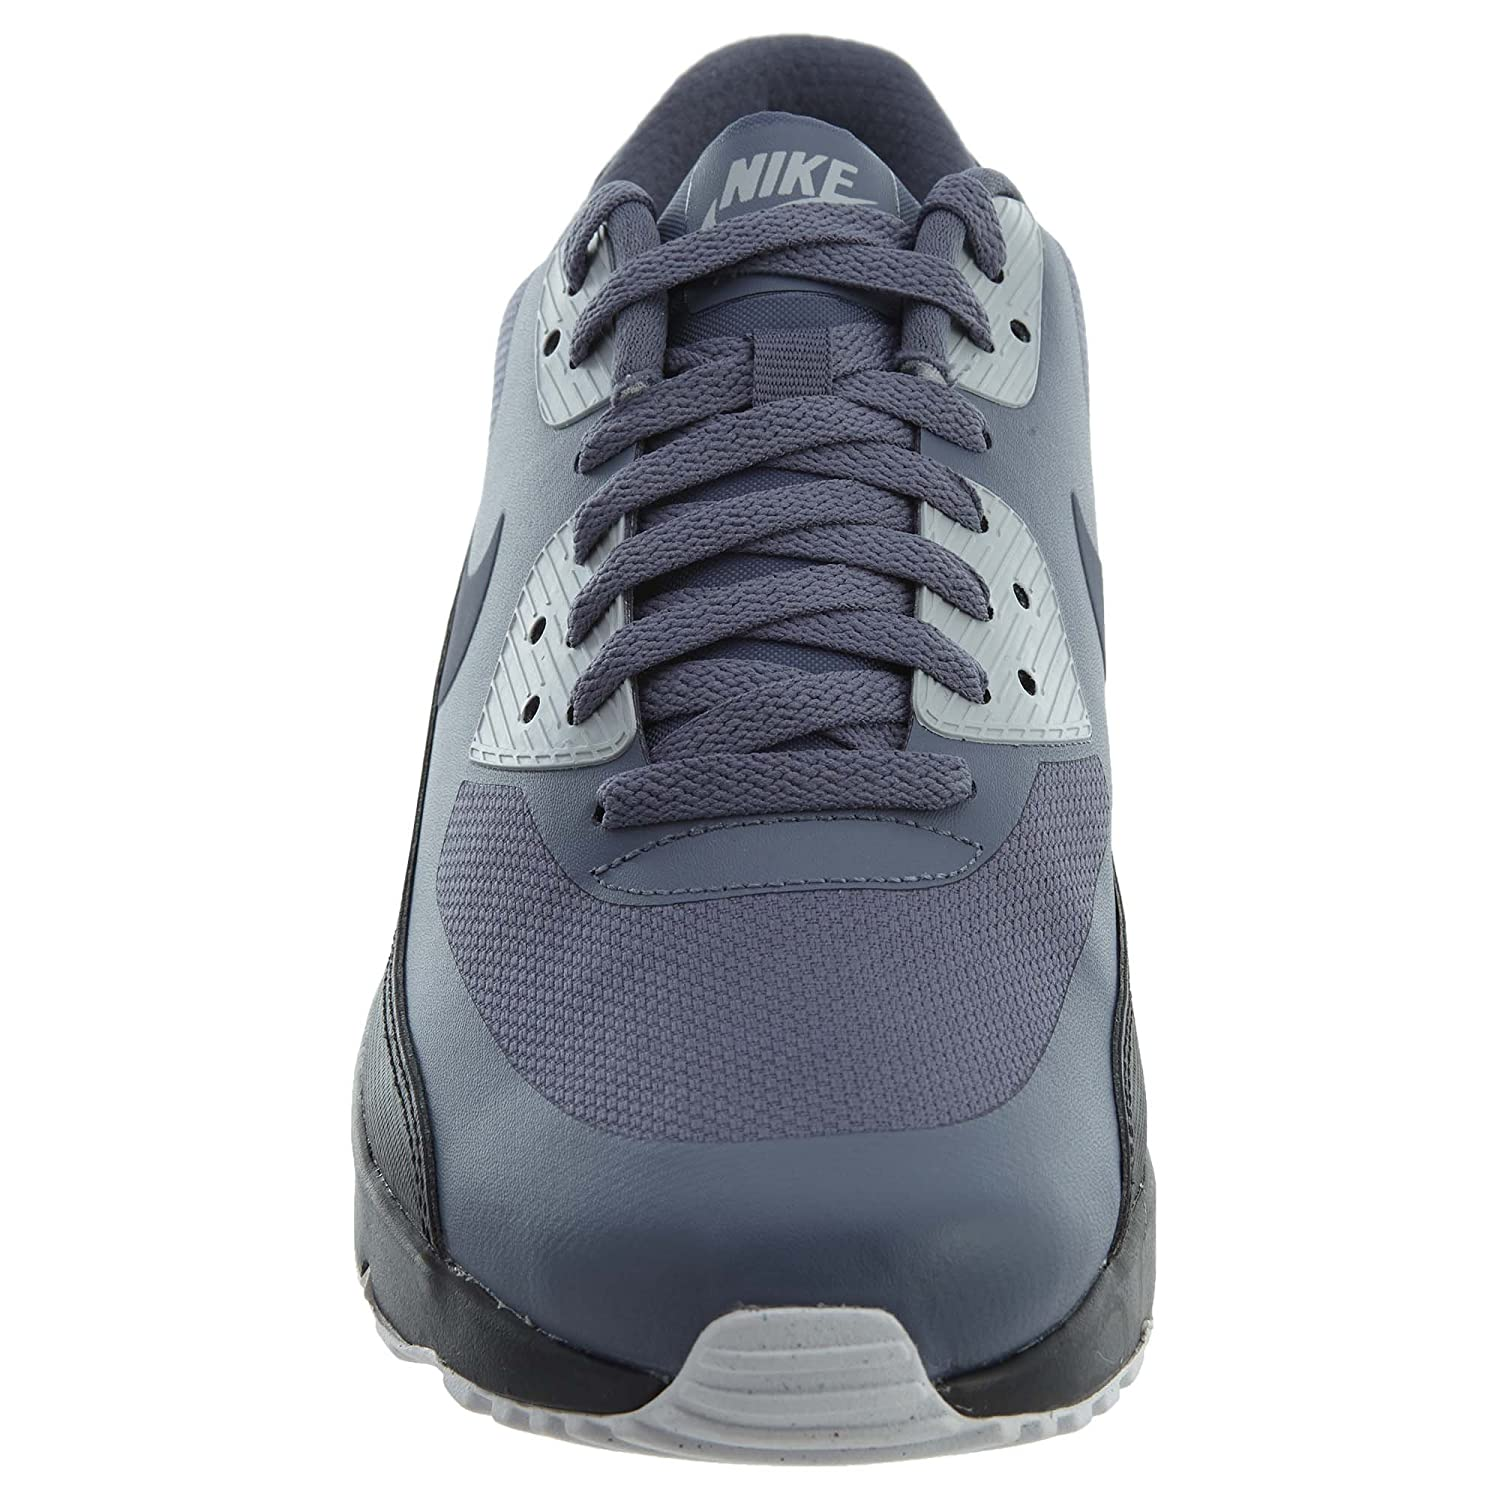 Nike Air Max 90 Ultra 2.0 Essential Mens Style: 875695 012